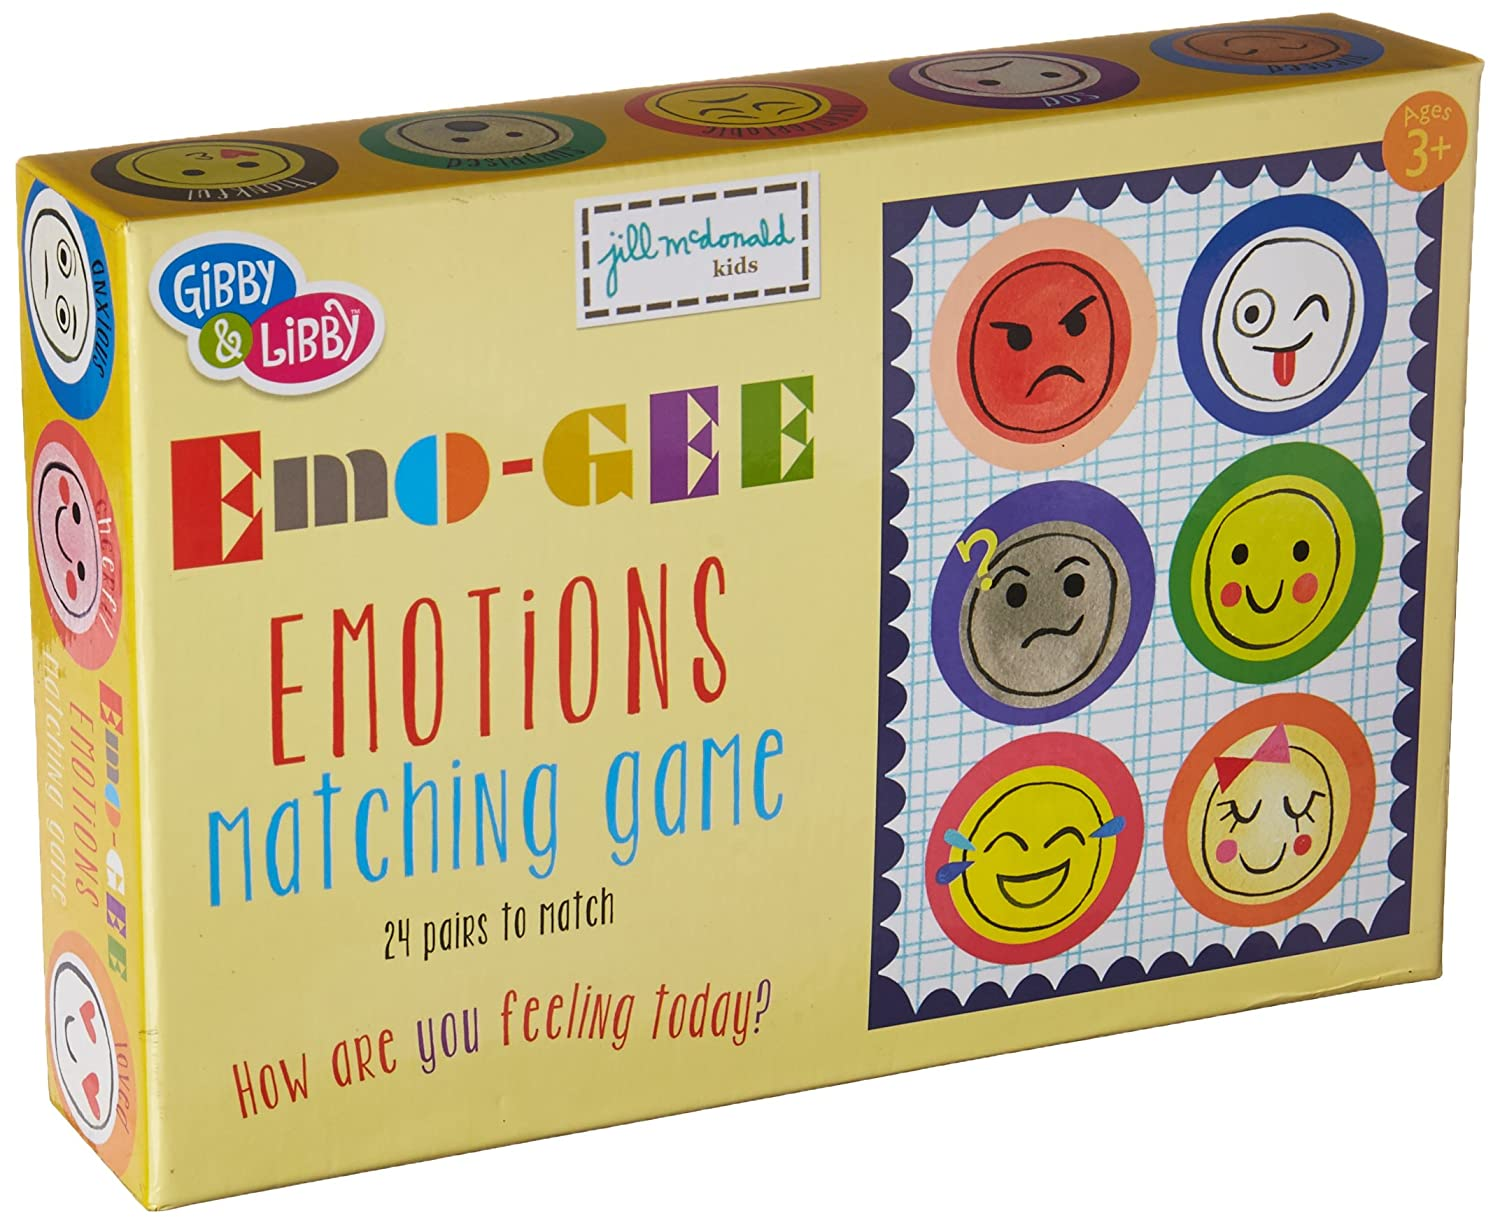 Amazon.com: C.R. Gibson, Emo-Gee Matching Game for Kids, 48pc: Toys & Games